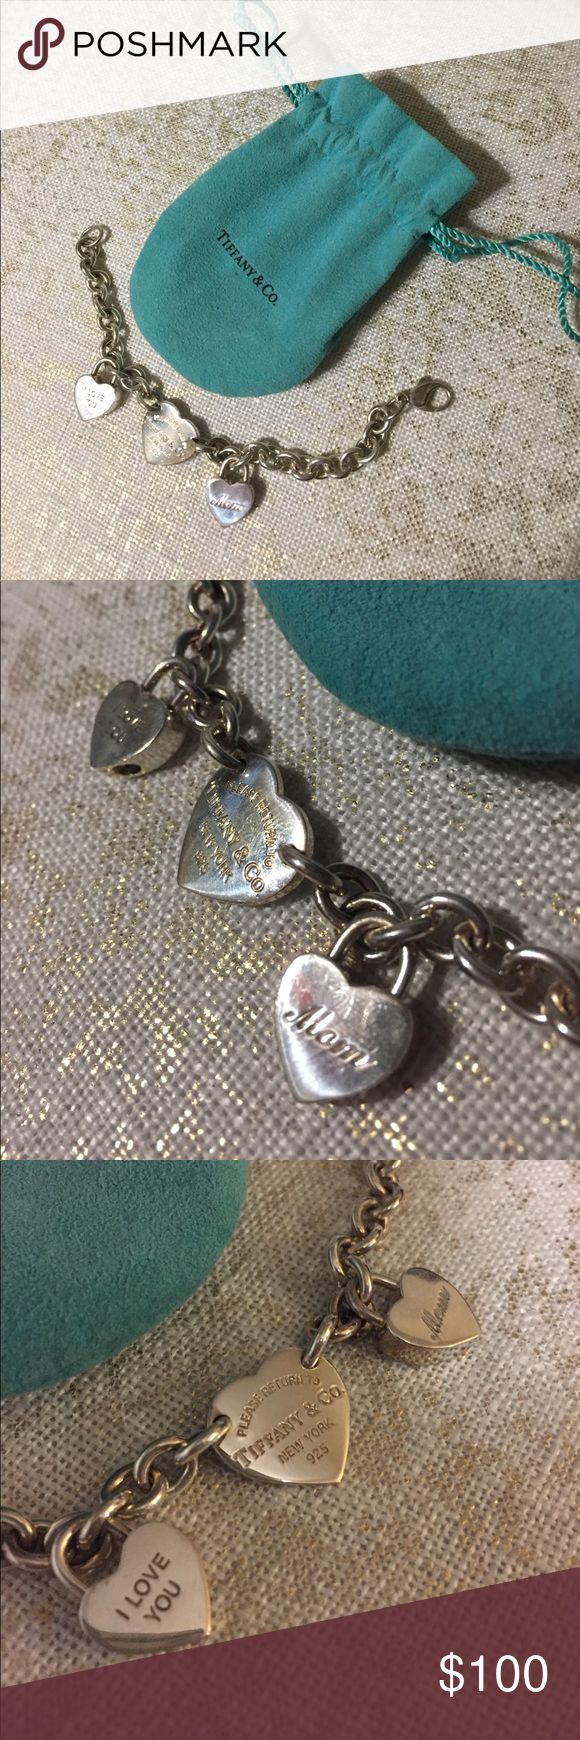 """Authentic Tiffany & Co. Charm Bracelet Sterling silver Return to Tiffany collection bracelet includes two matching heart charms """"I love you"""" and """"mom"""". Perfect gift! Comes with original bag shown. Tiffany & Co. Jewelry Bracelets"""